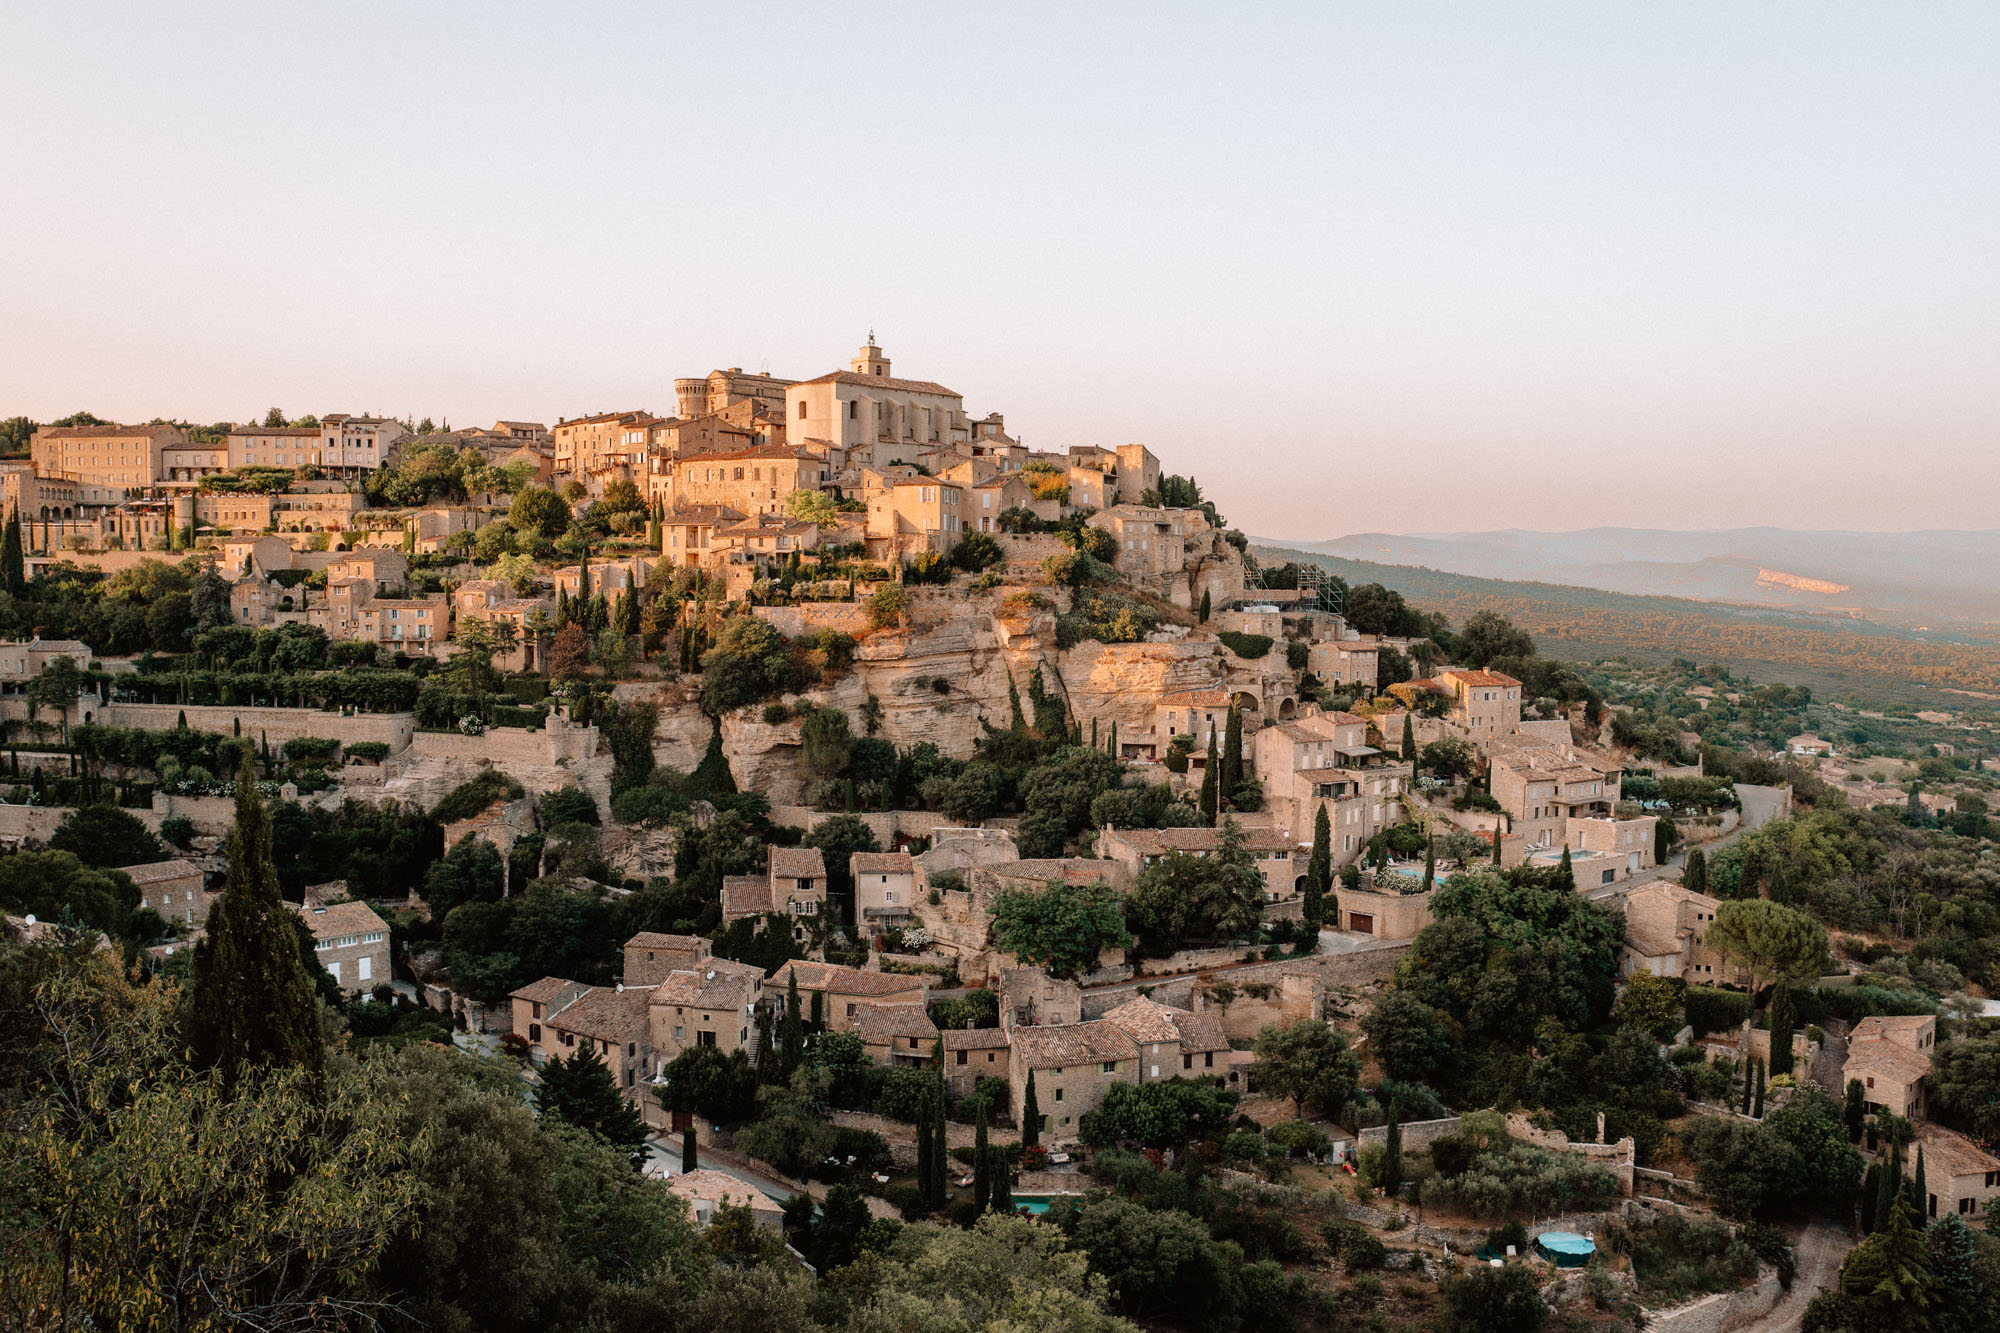 Gordes hilltop town in Luberon, Provence, South of France